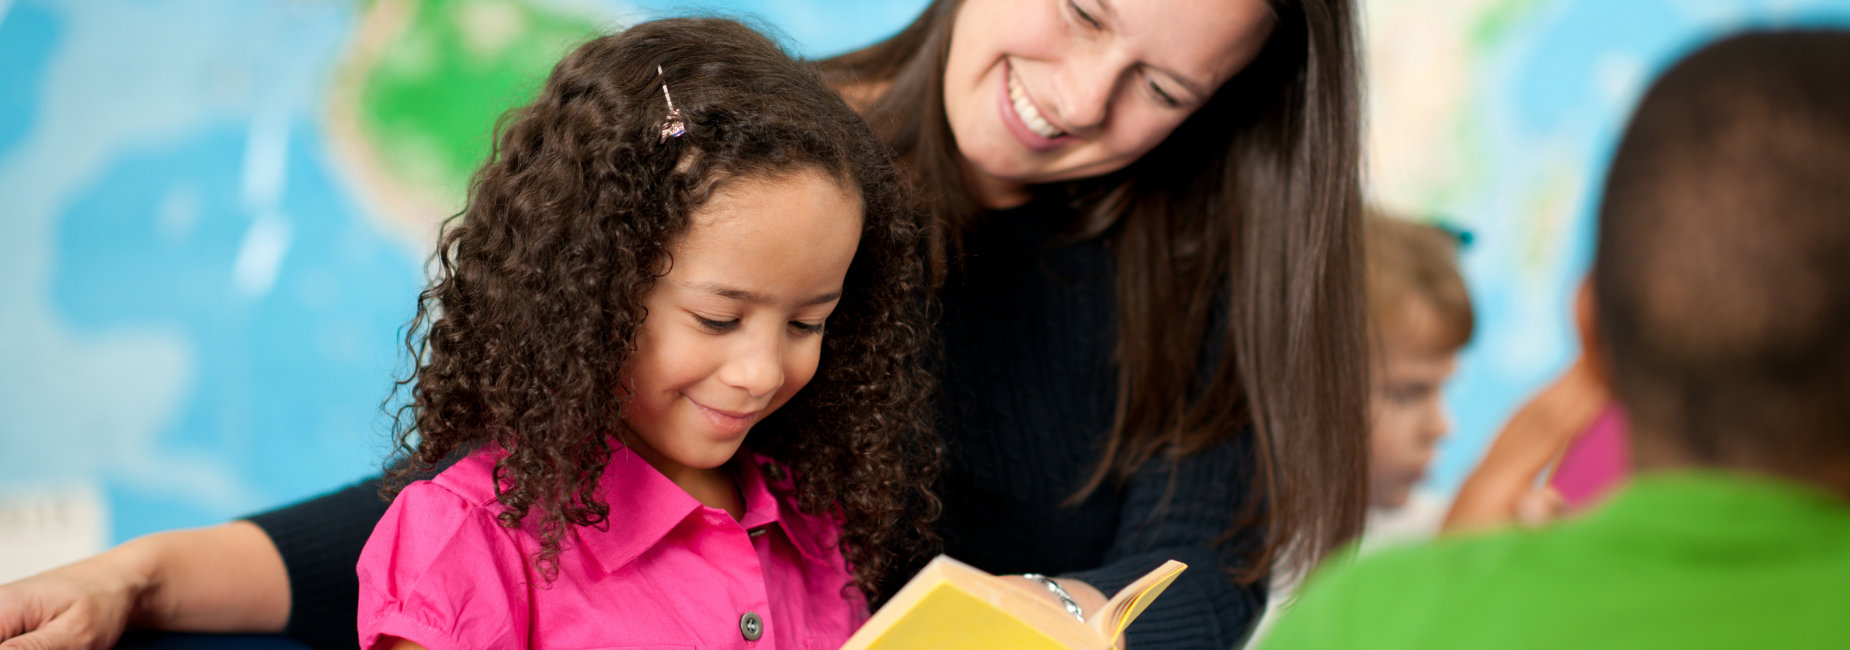 young girl with curly hair looking at a book with her teacher behind her